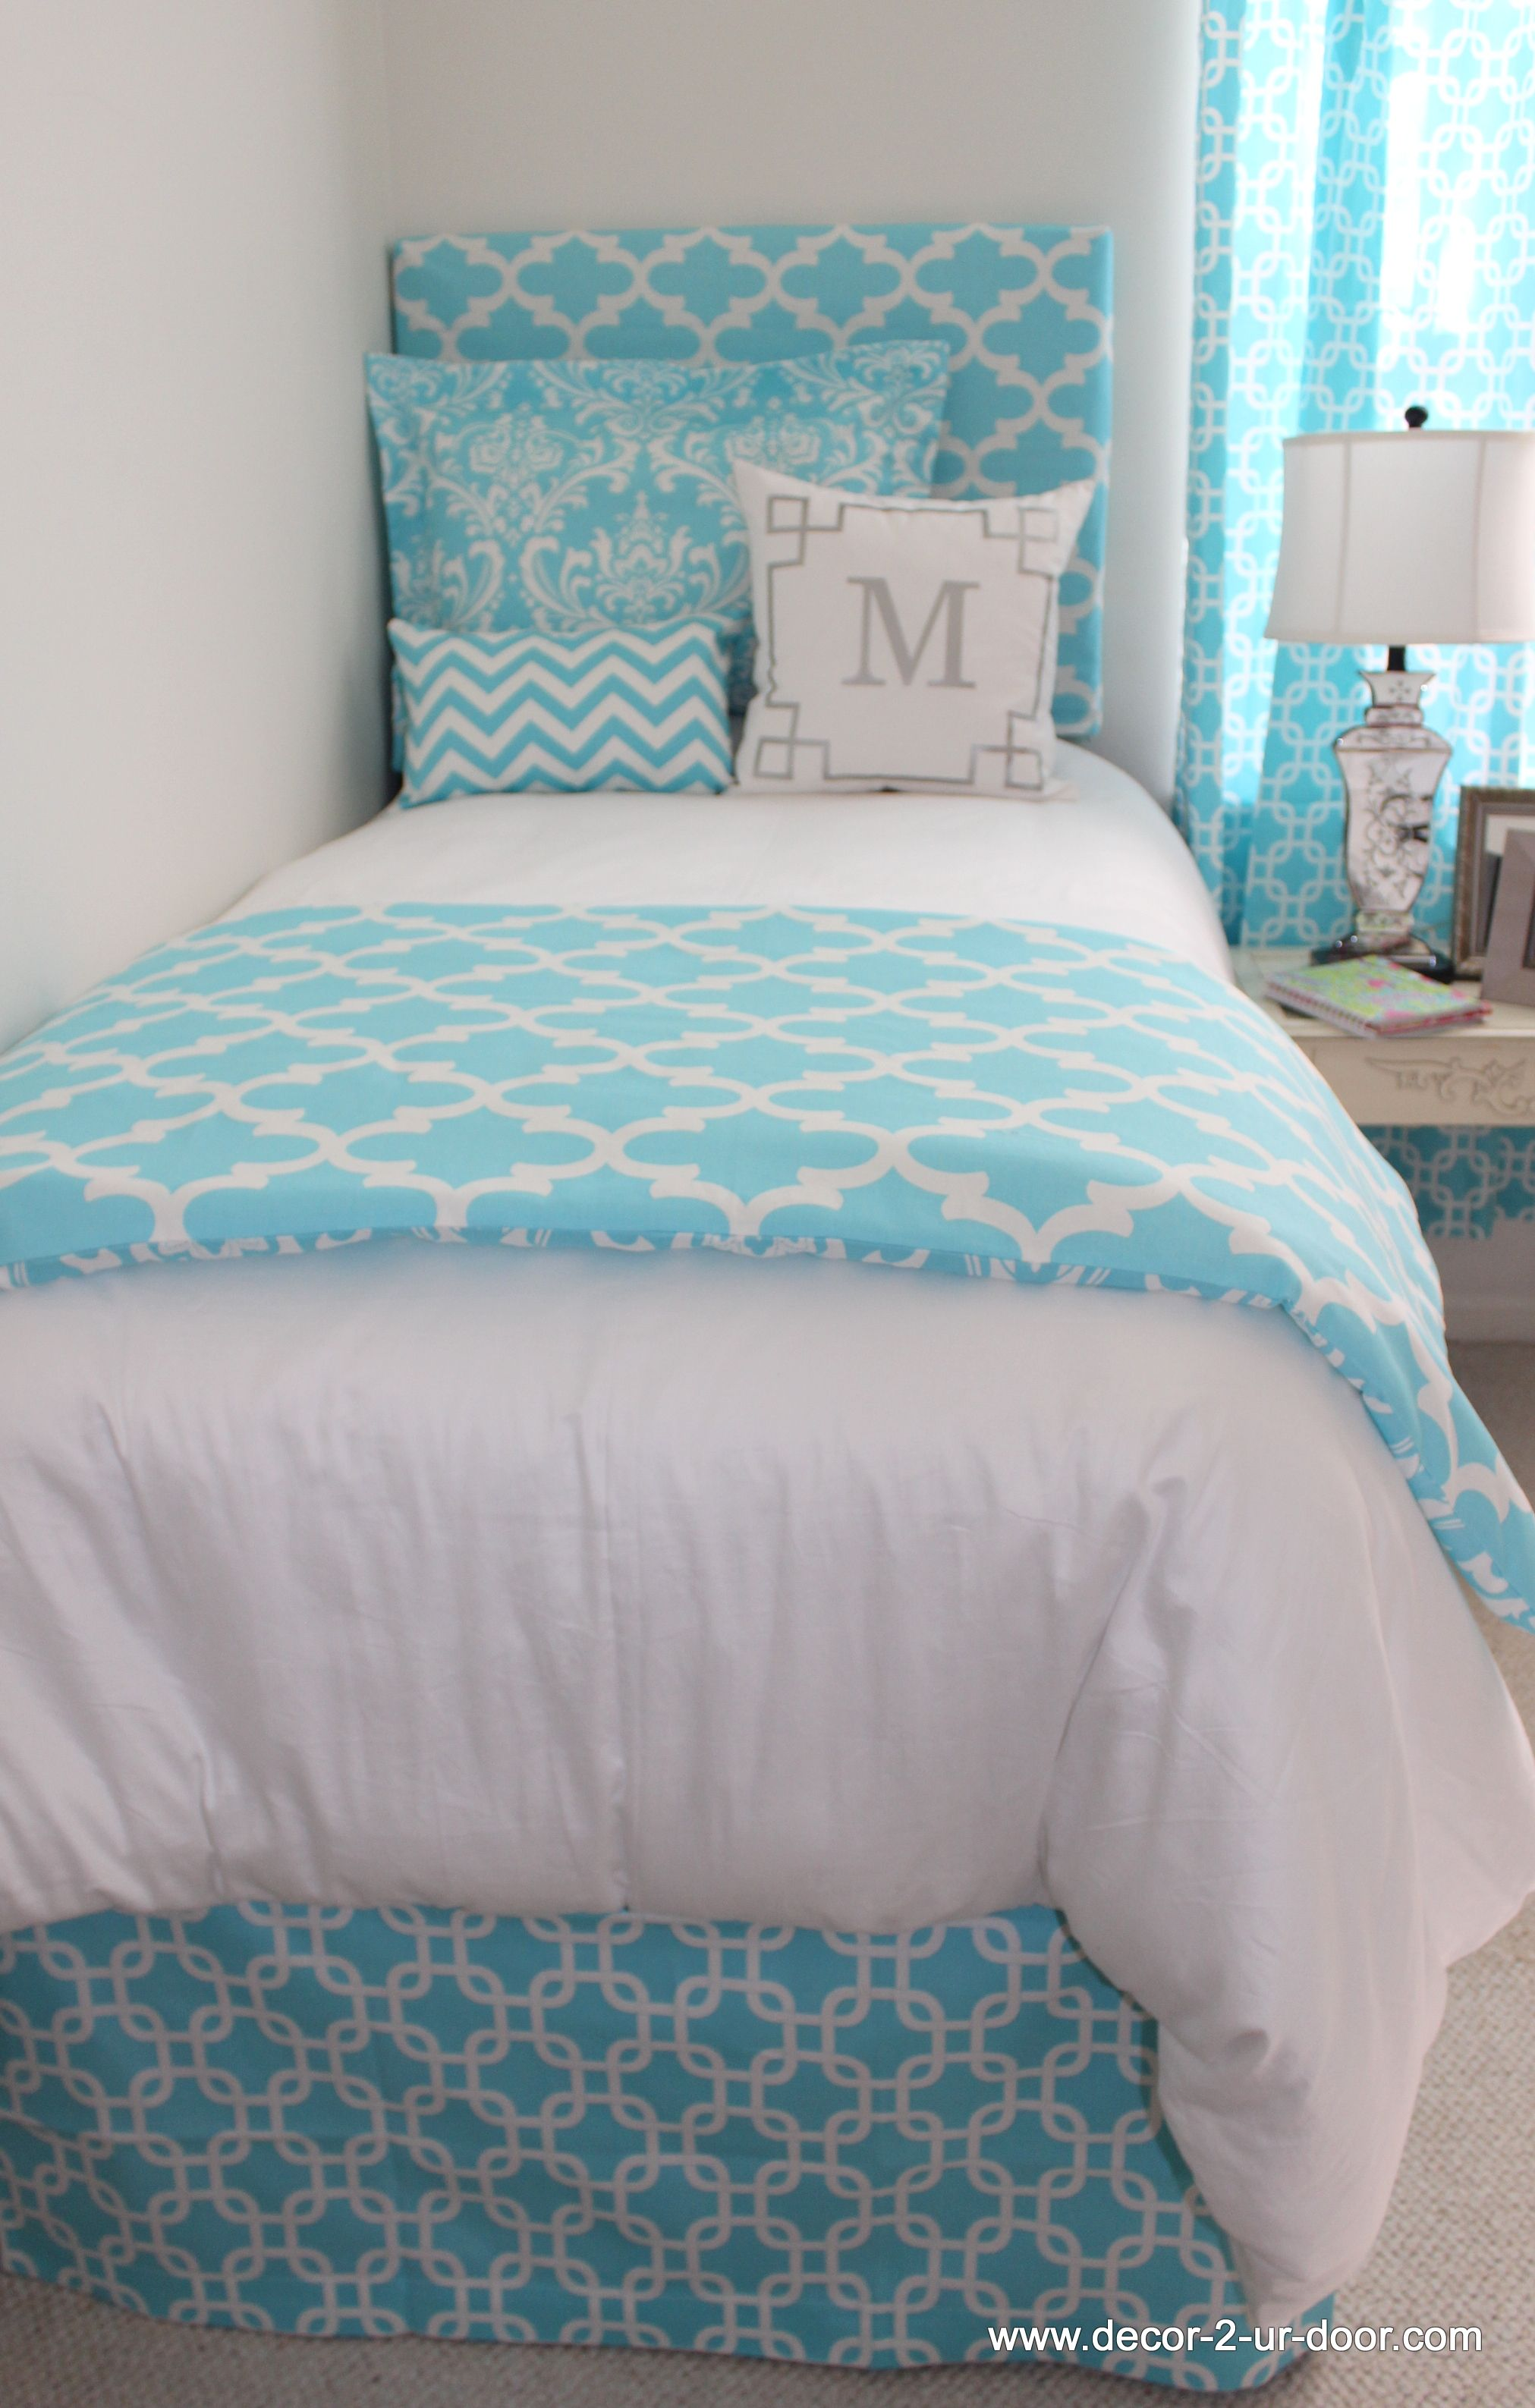 Bright blue bedding - Bright Blue Bedding Perfect For Home Or Dorm Popular Fretwork Or Quadrafoil Pattern Monogrammed Metallic